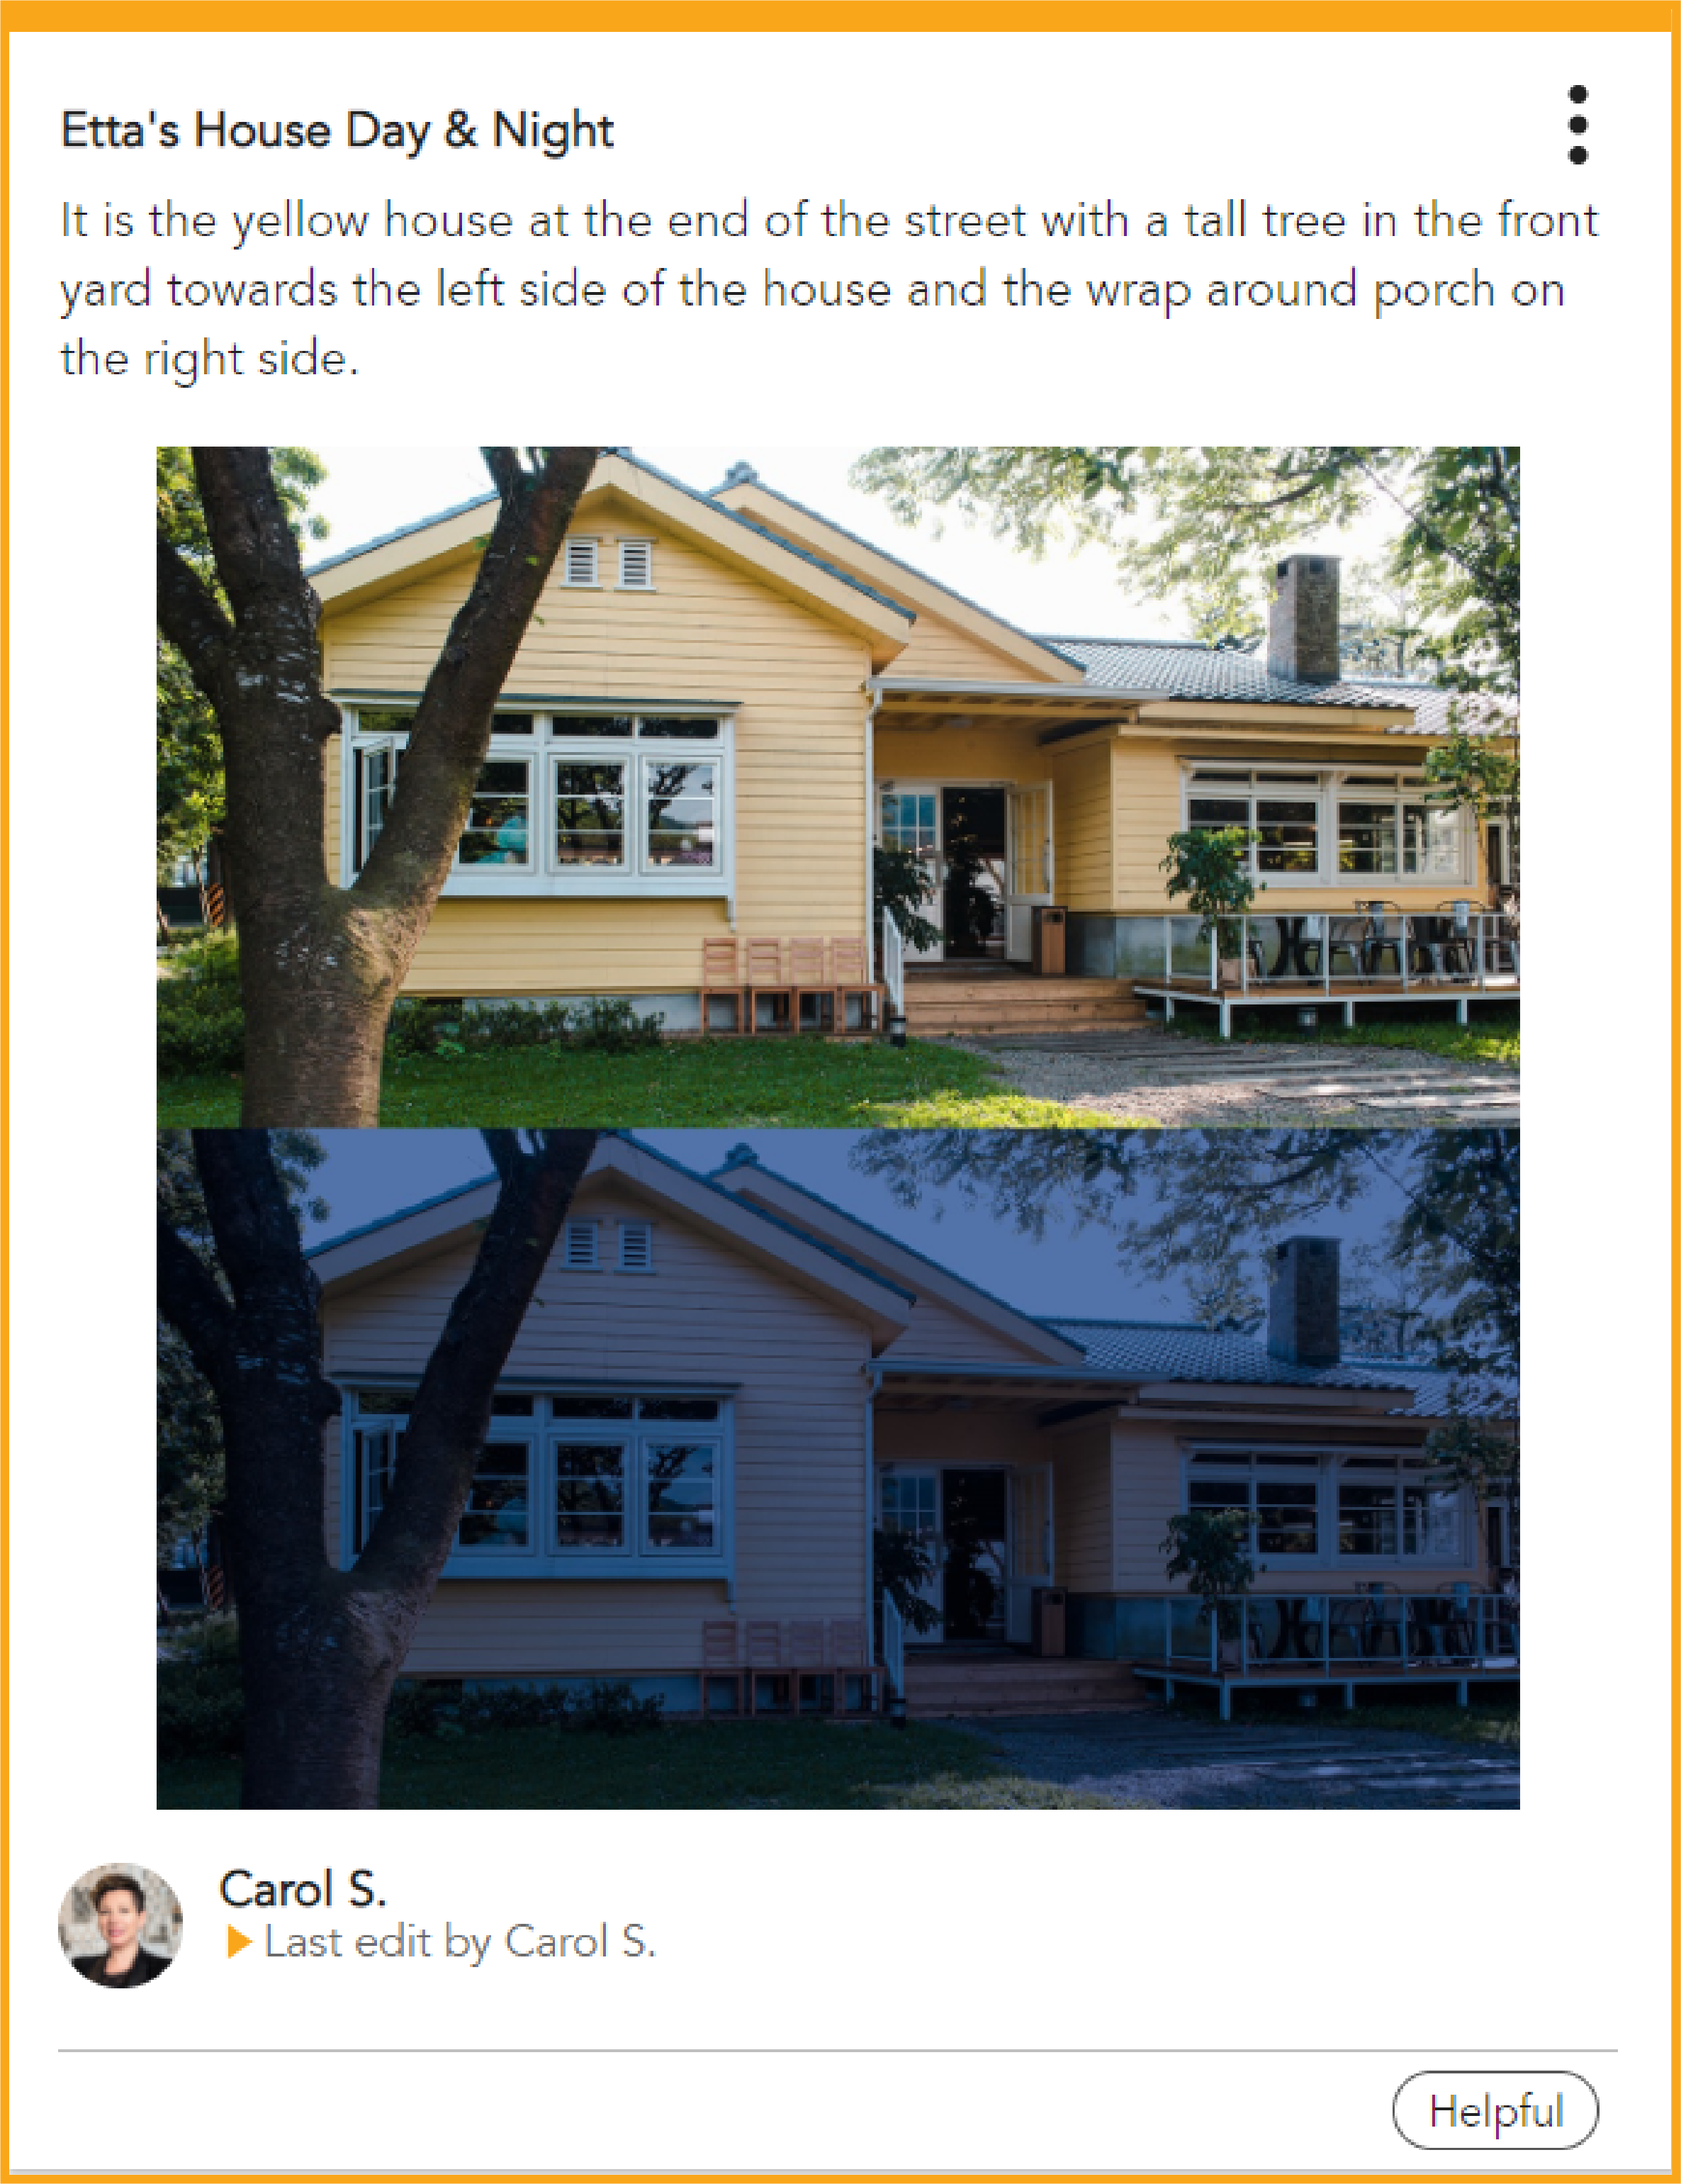 Etta's house in the day and night